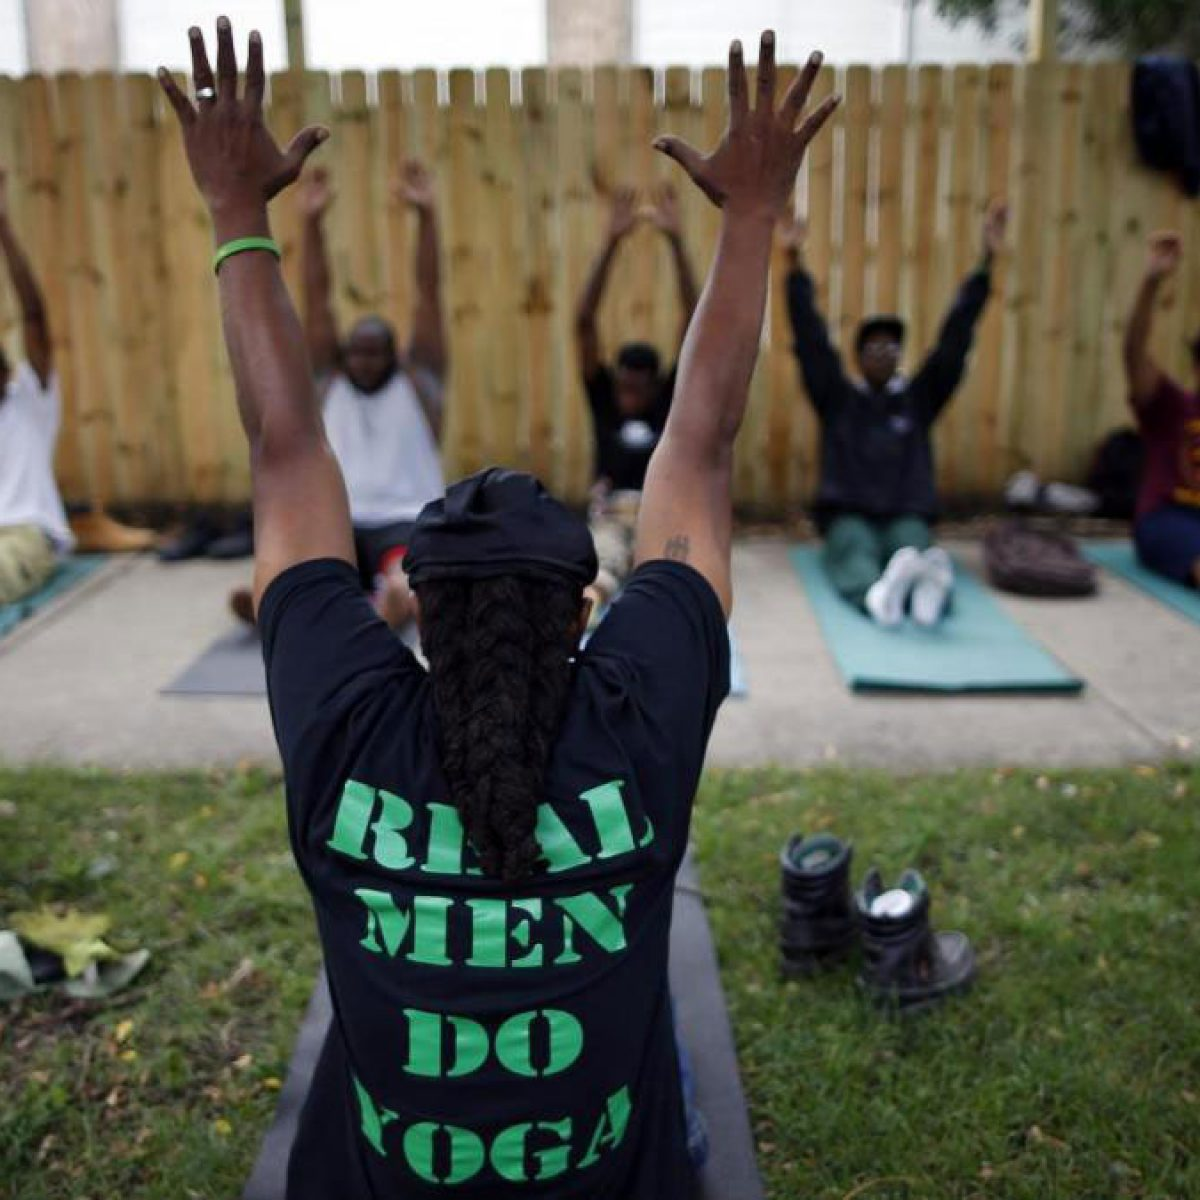 Yoga is an everyday activity for many of the community members in this Englewood community. They are taking back their neighborhood and ushering in peace. The bRave Files Podcast.